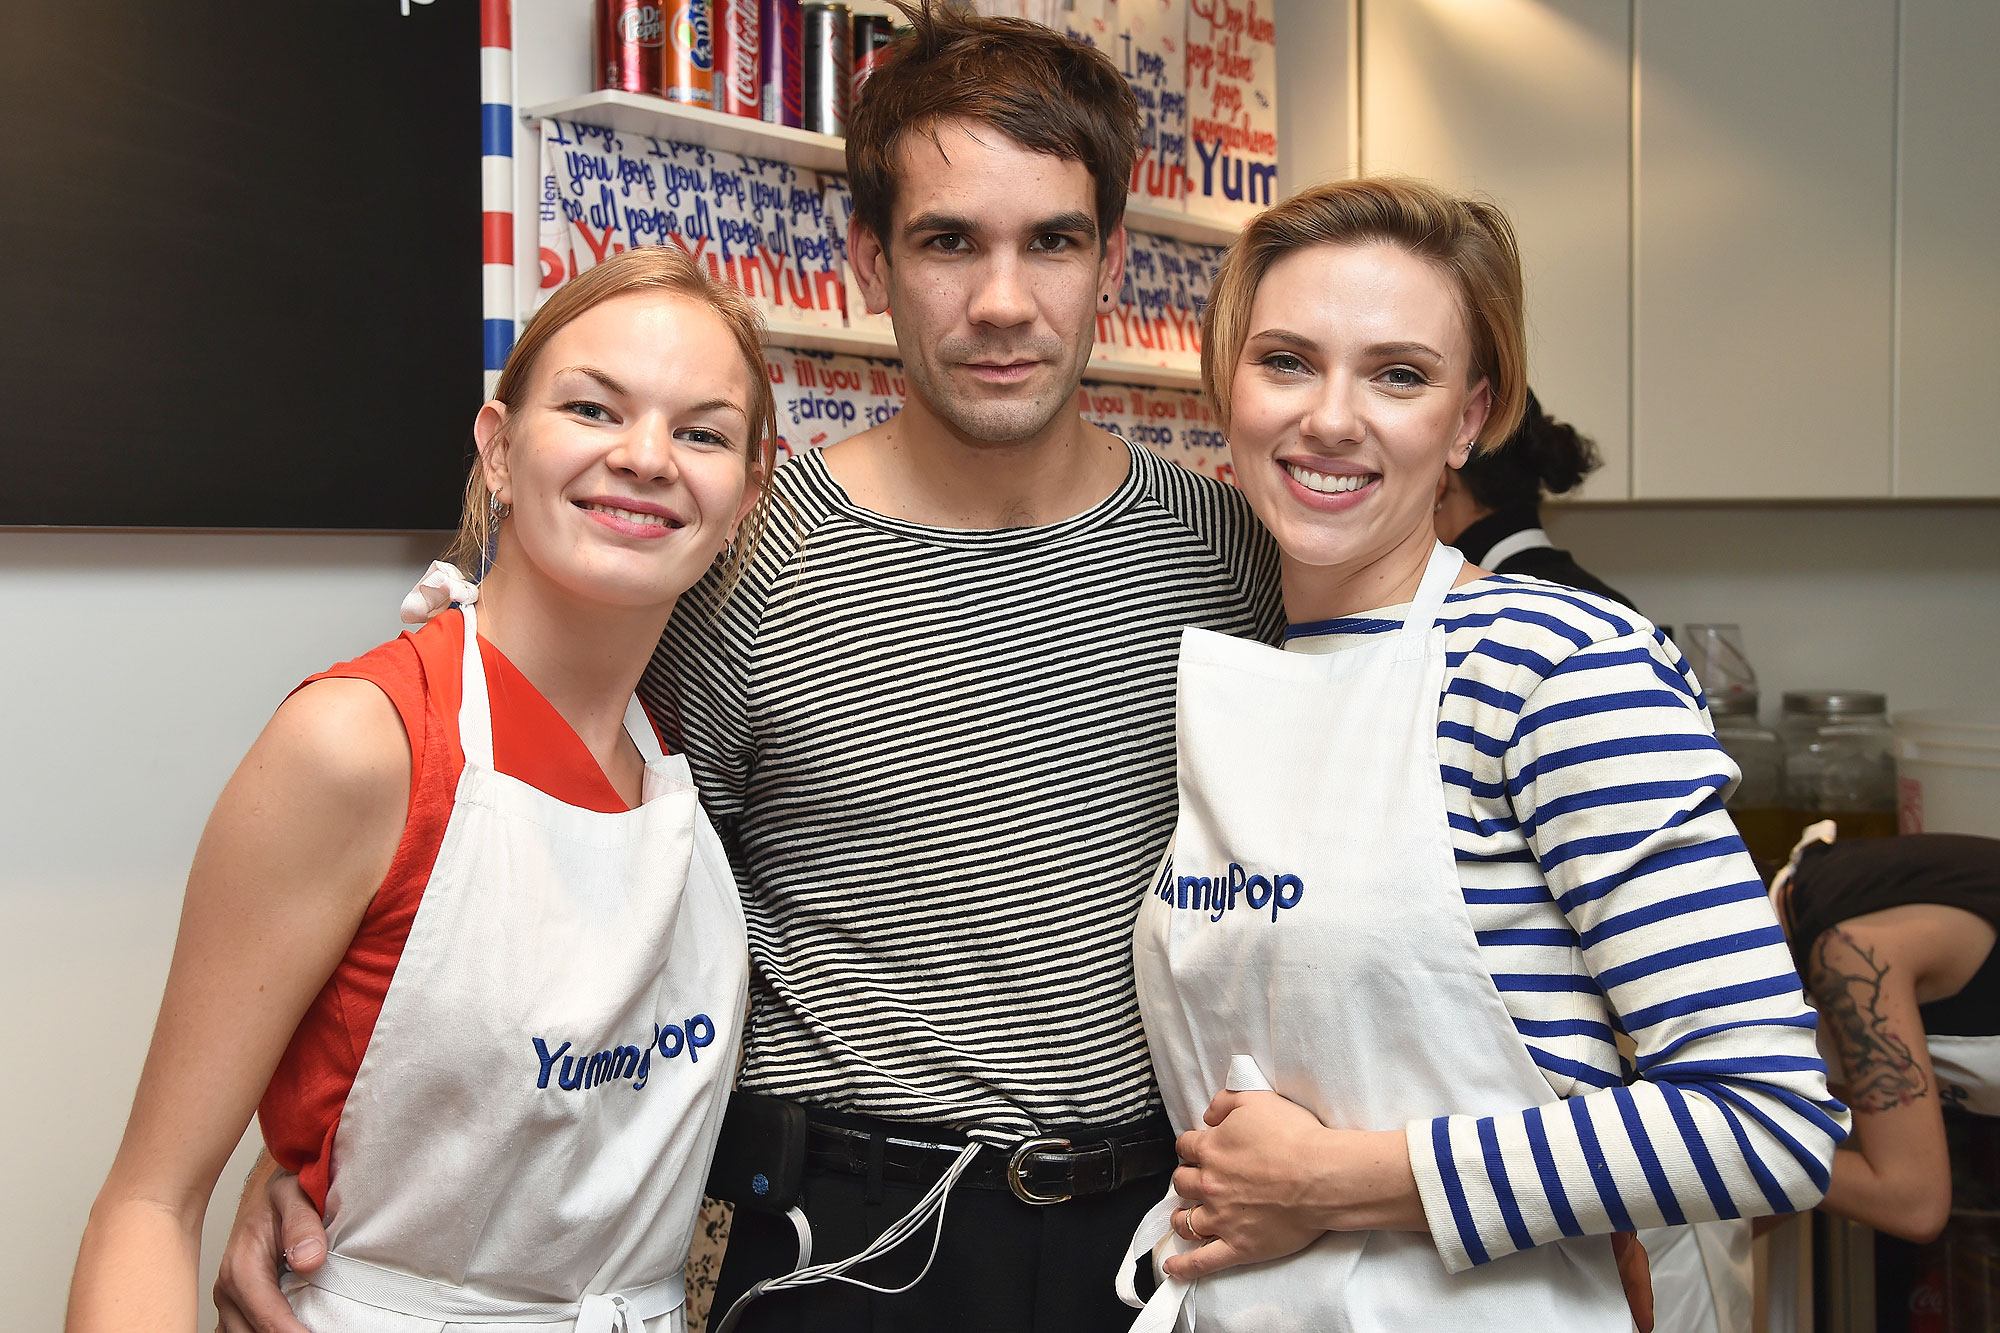 PARIS, FRANCE - OCTOBER 22: (L-R) Victoria Chevalier, Romain Dauriac and Scarlett Johansson attend the opening of the Yummy Pop shop where Scarlett Johansson opens the new store Yummy Pop in Le Marais, Paris on October 22, 2016 in Paris, France. (Photo by Pascal Le Segretain/Getty Images for Yummy Pop)